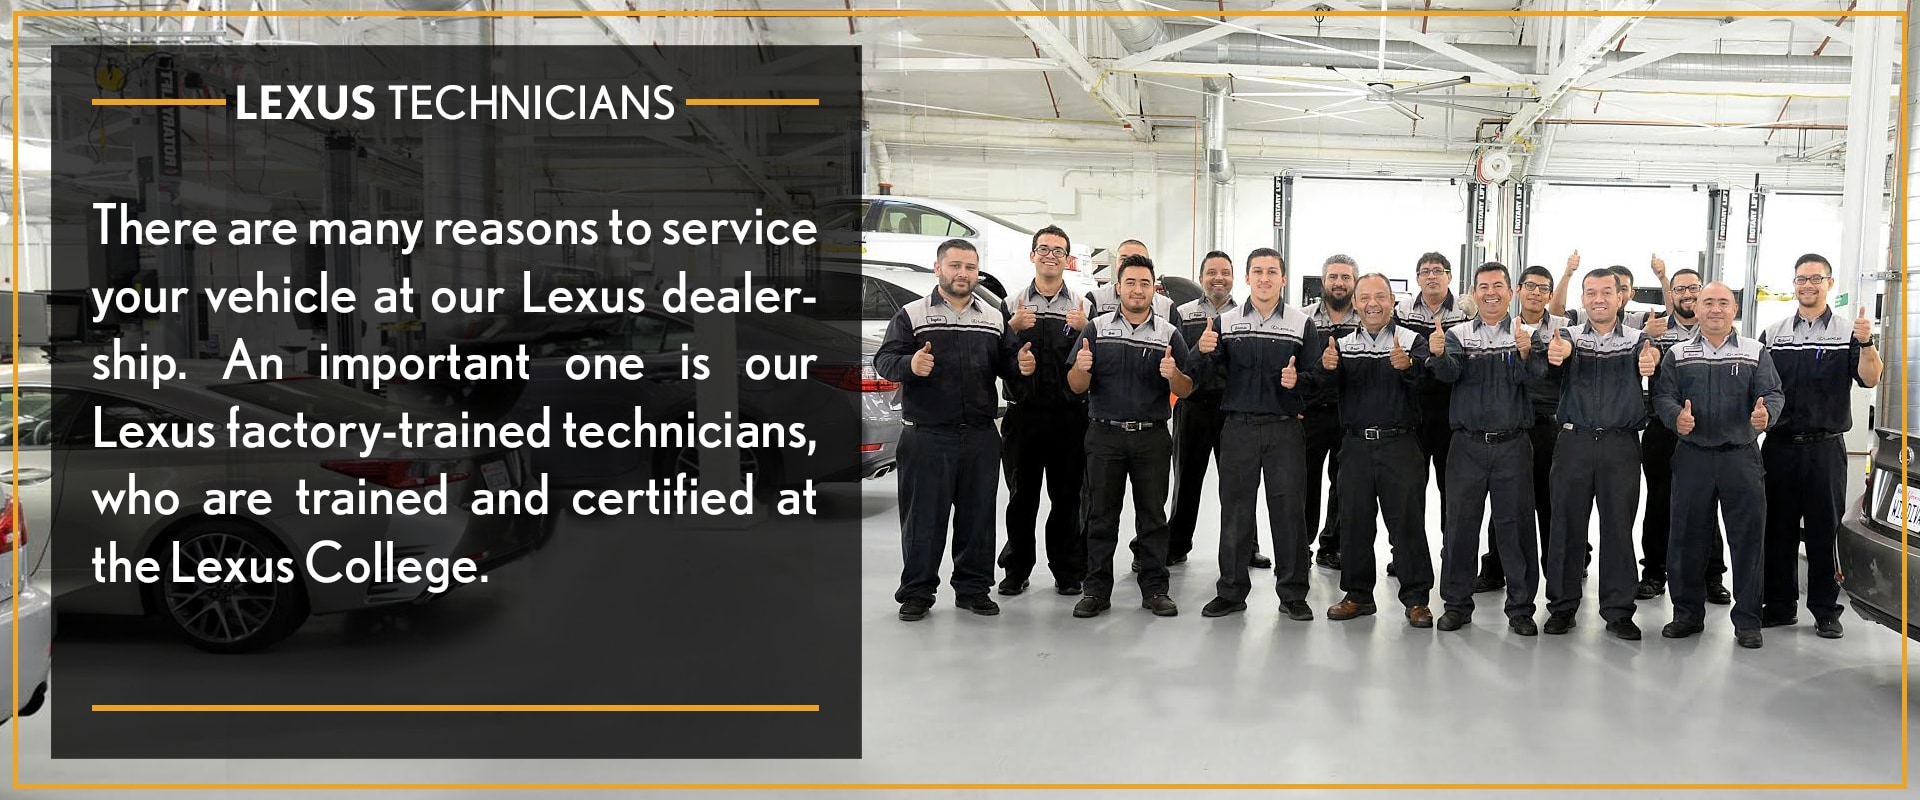 There Are Many Reasons To Service Your Vehicle At Our Lexus Dealership. An  Important One Is Our Lexus Factory Trained Technicians, Who Are Trained And  ...